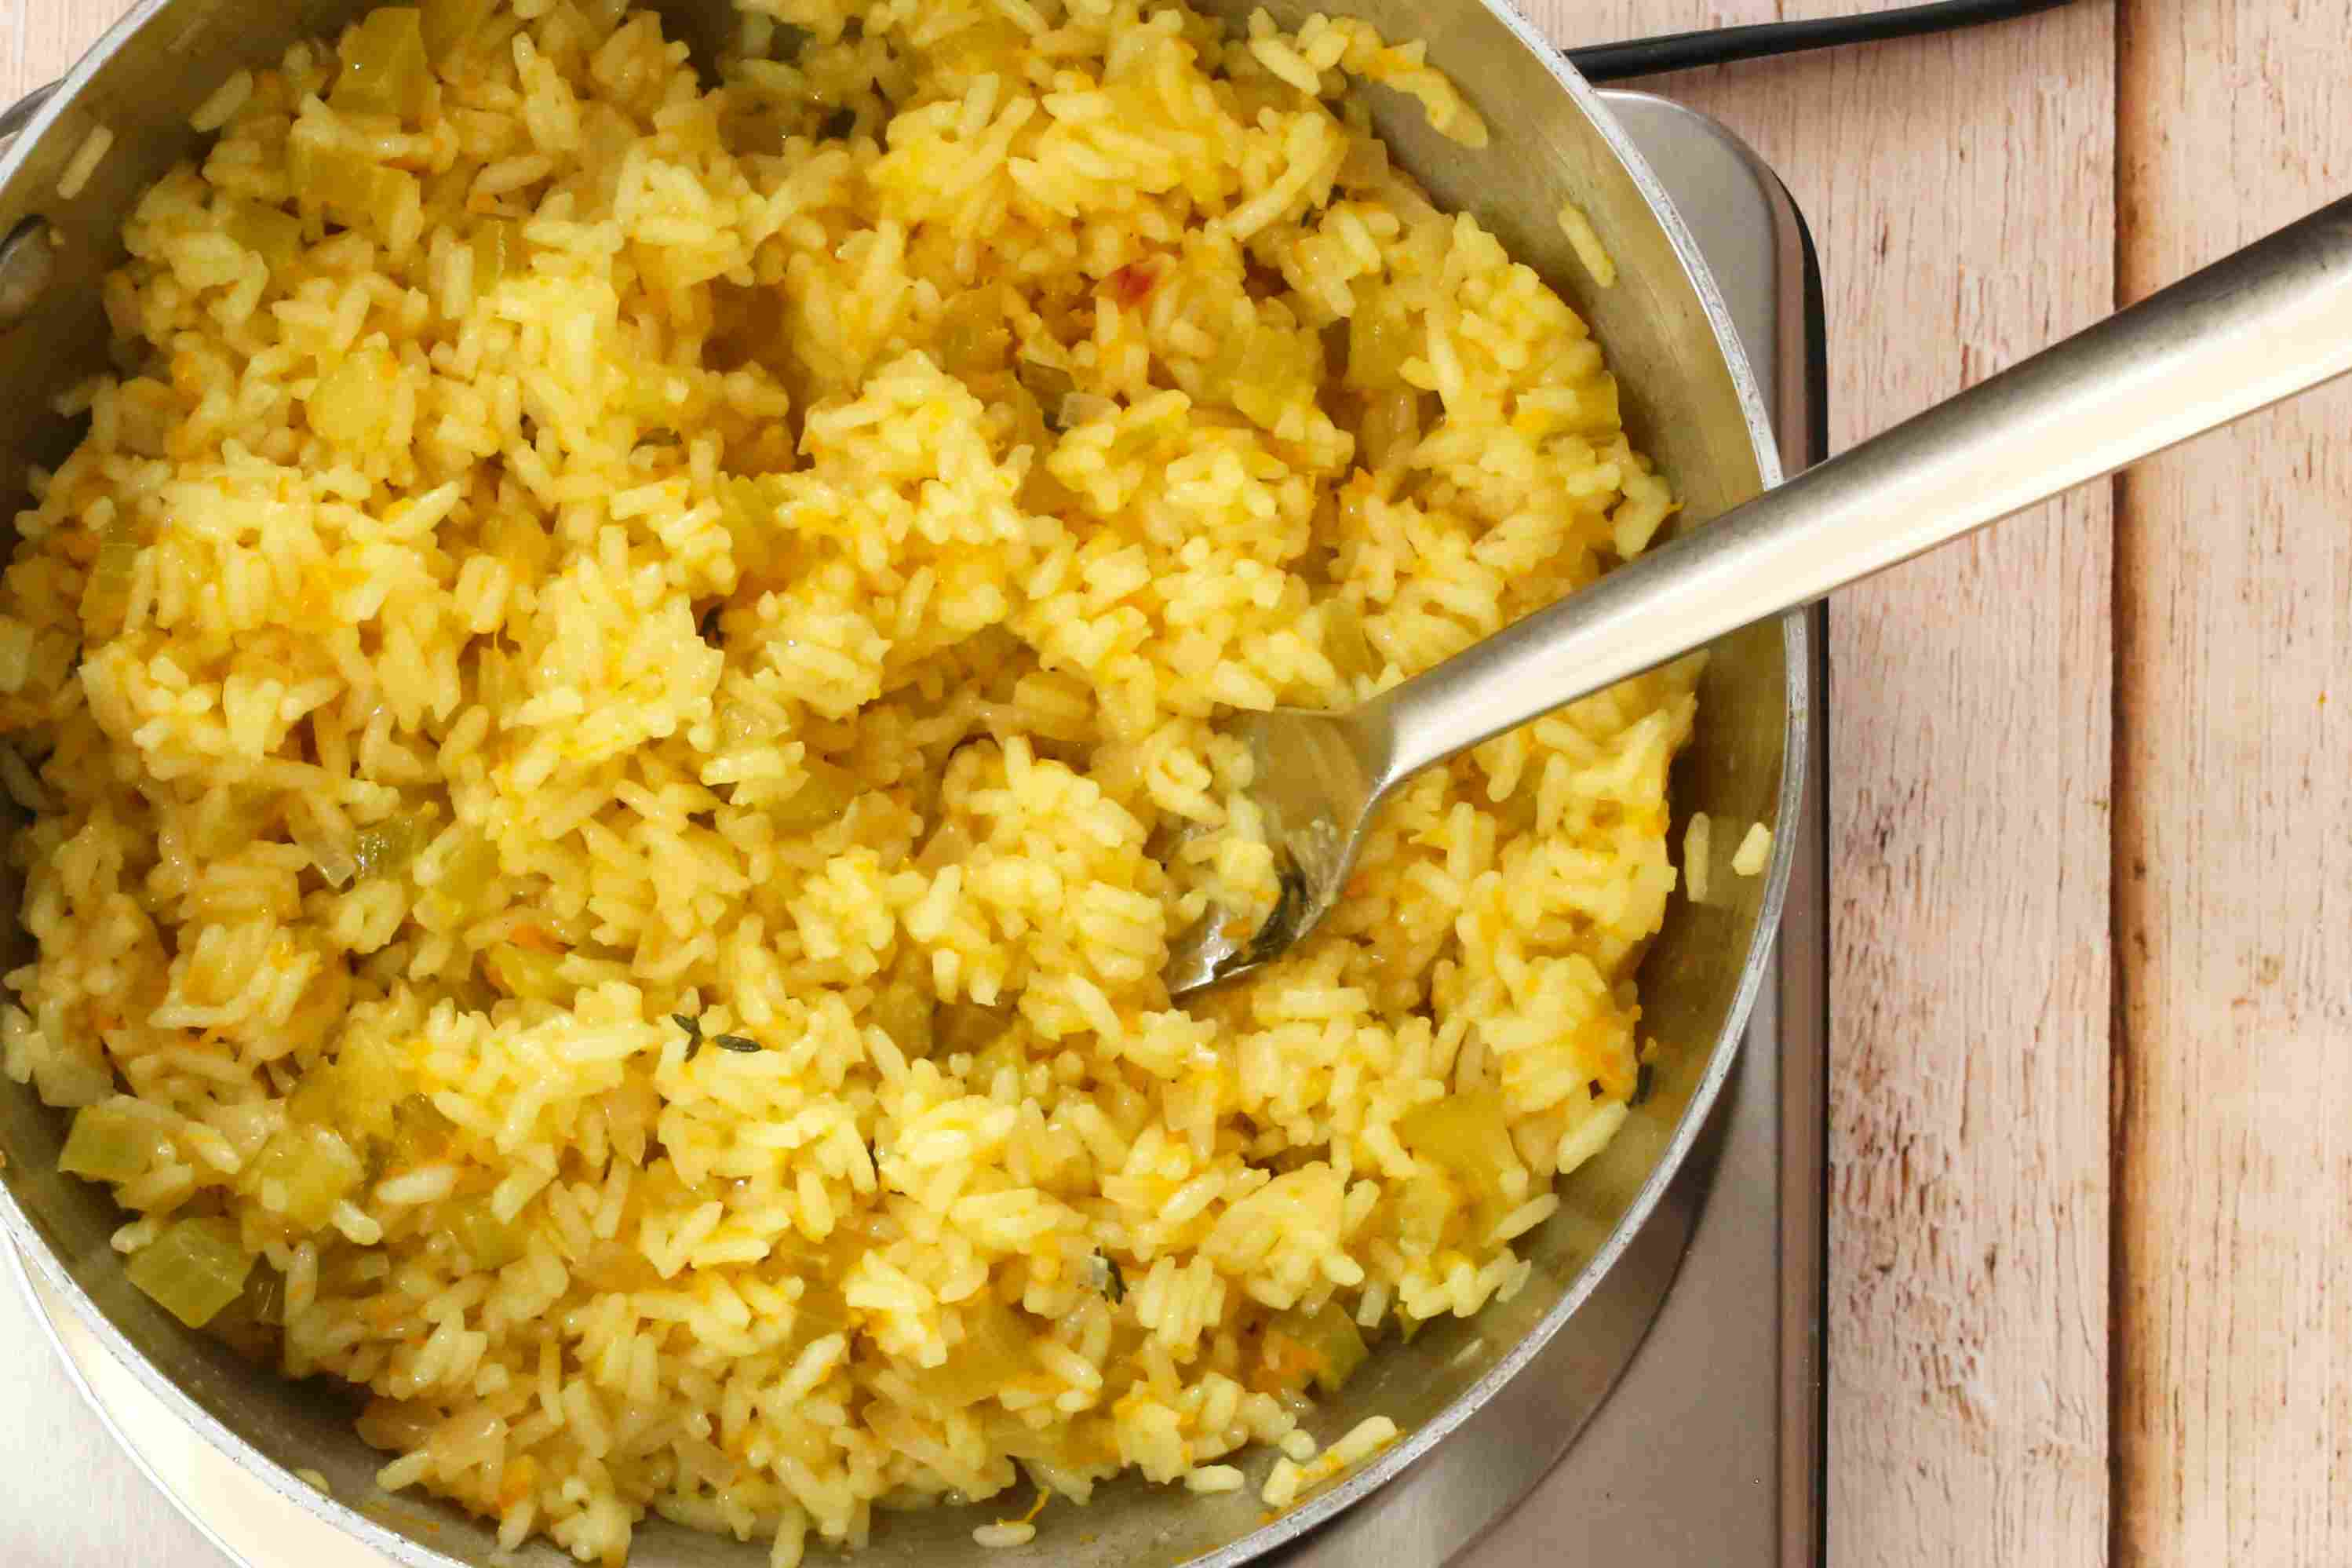 Fluff the orange rice with a fork.